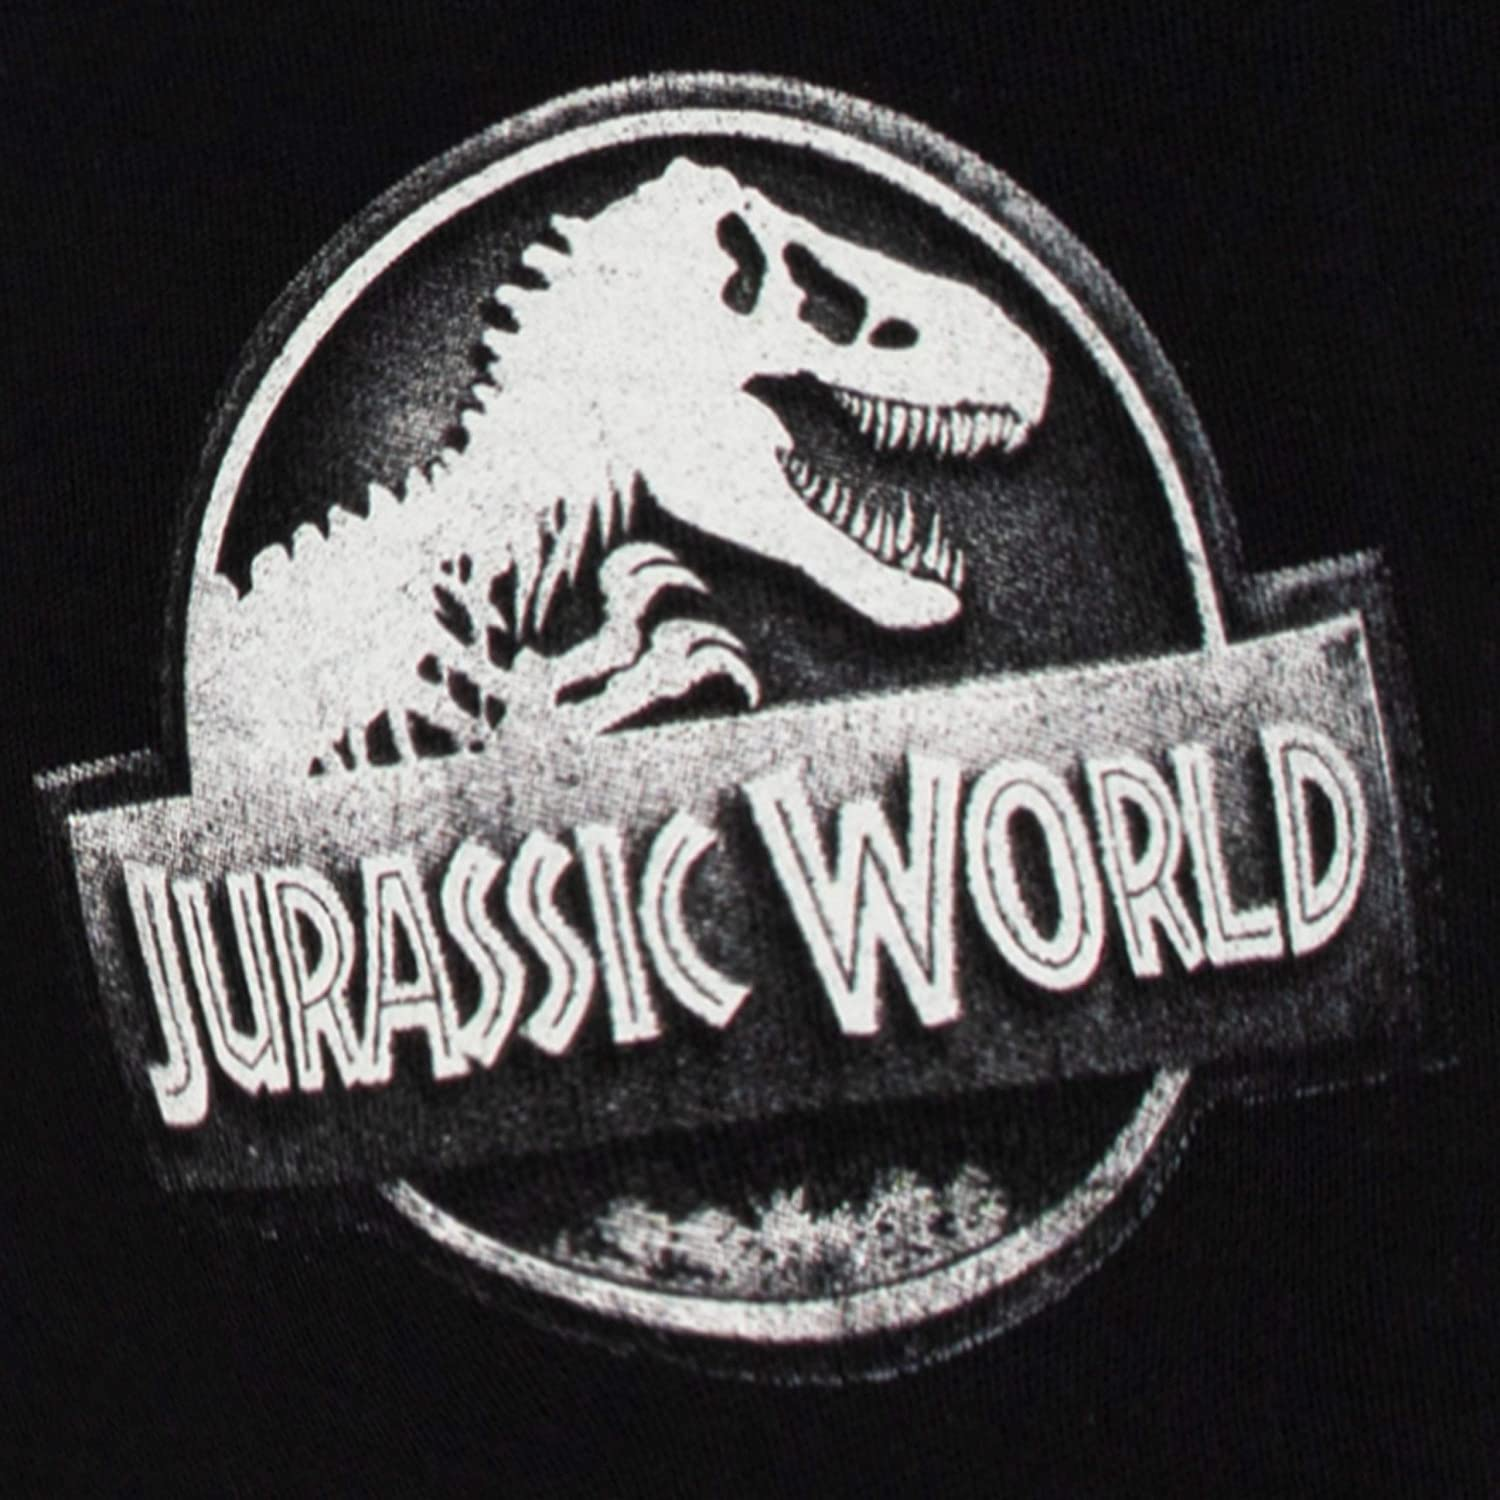 Jurassic World Boys Dinosaur Pyjamas